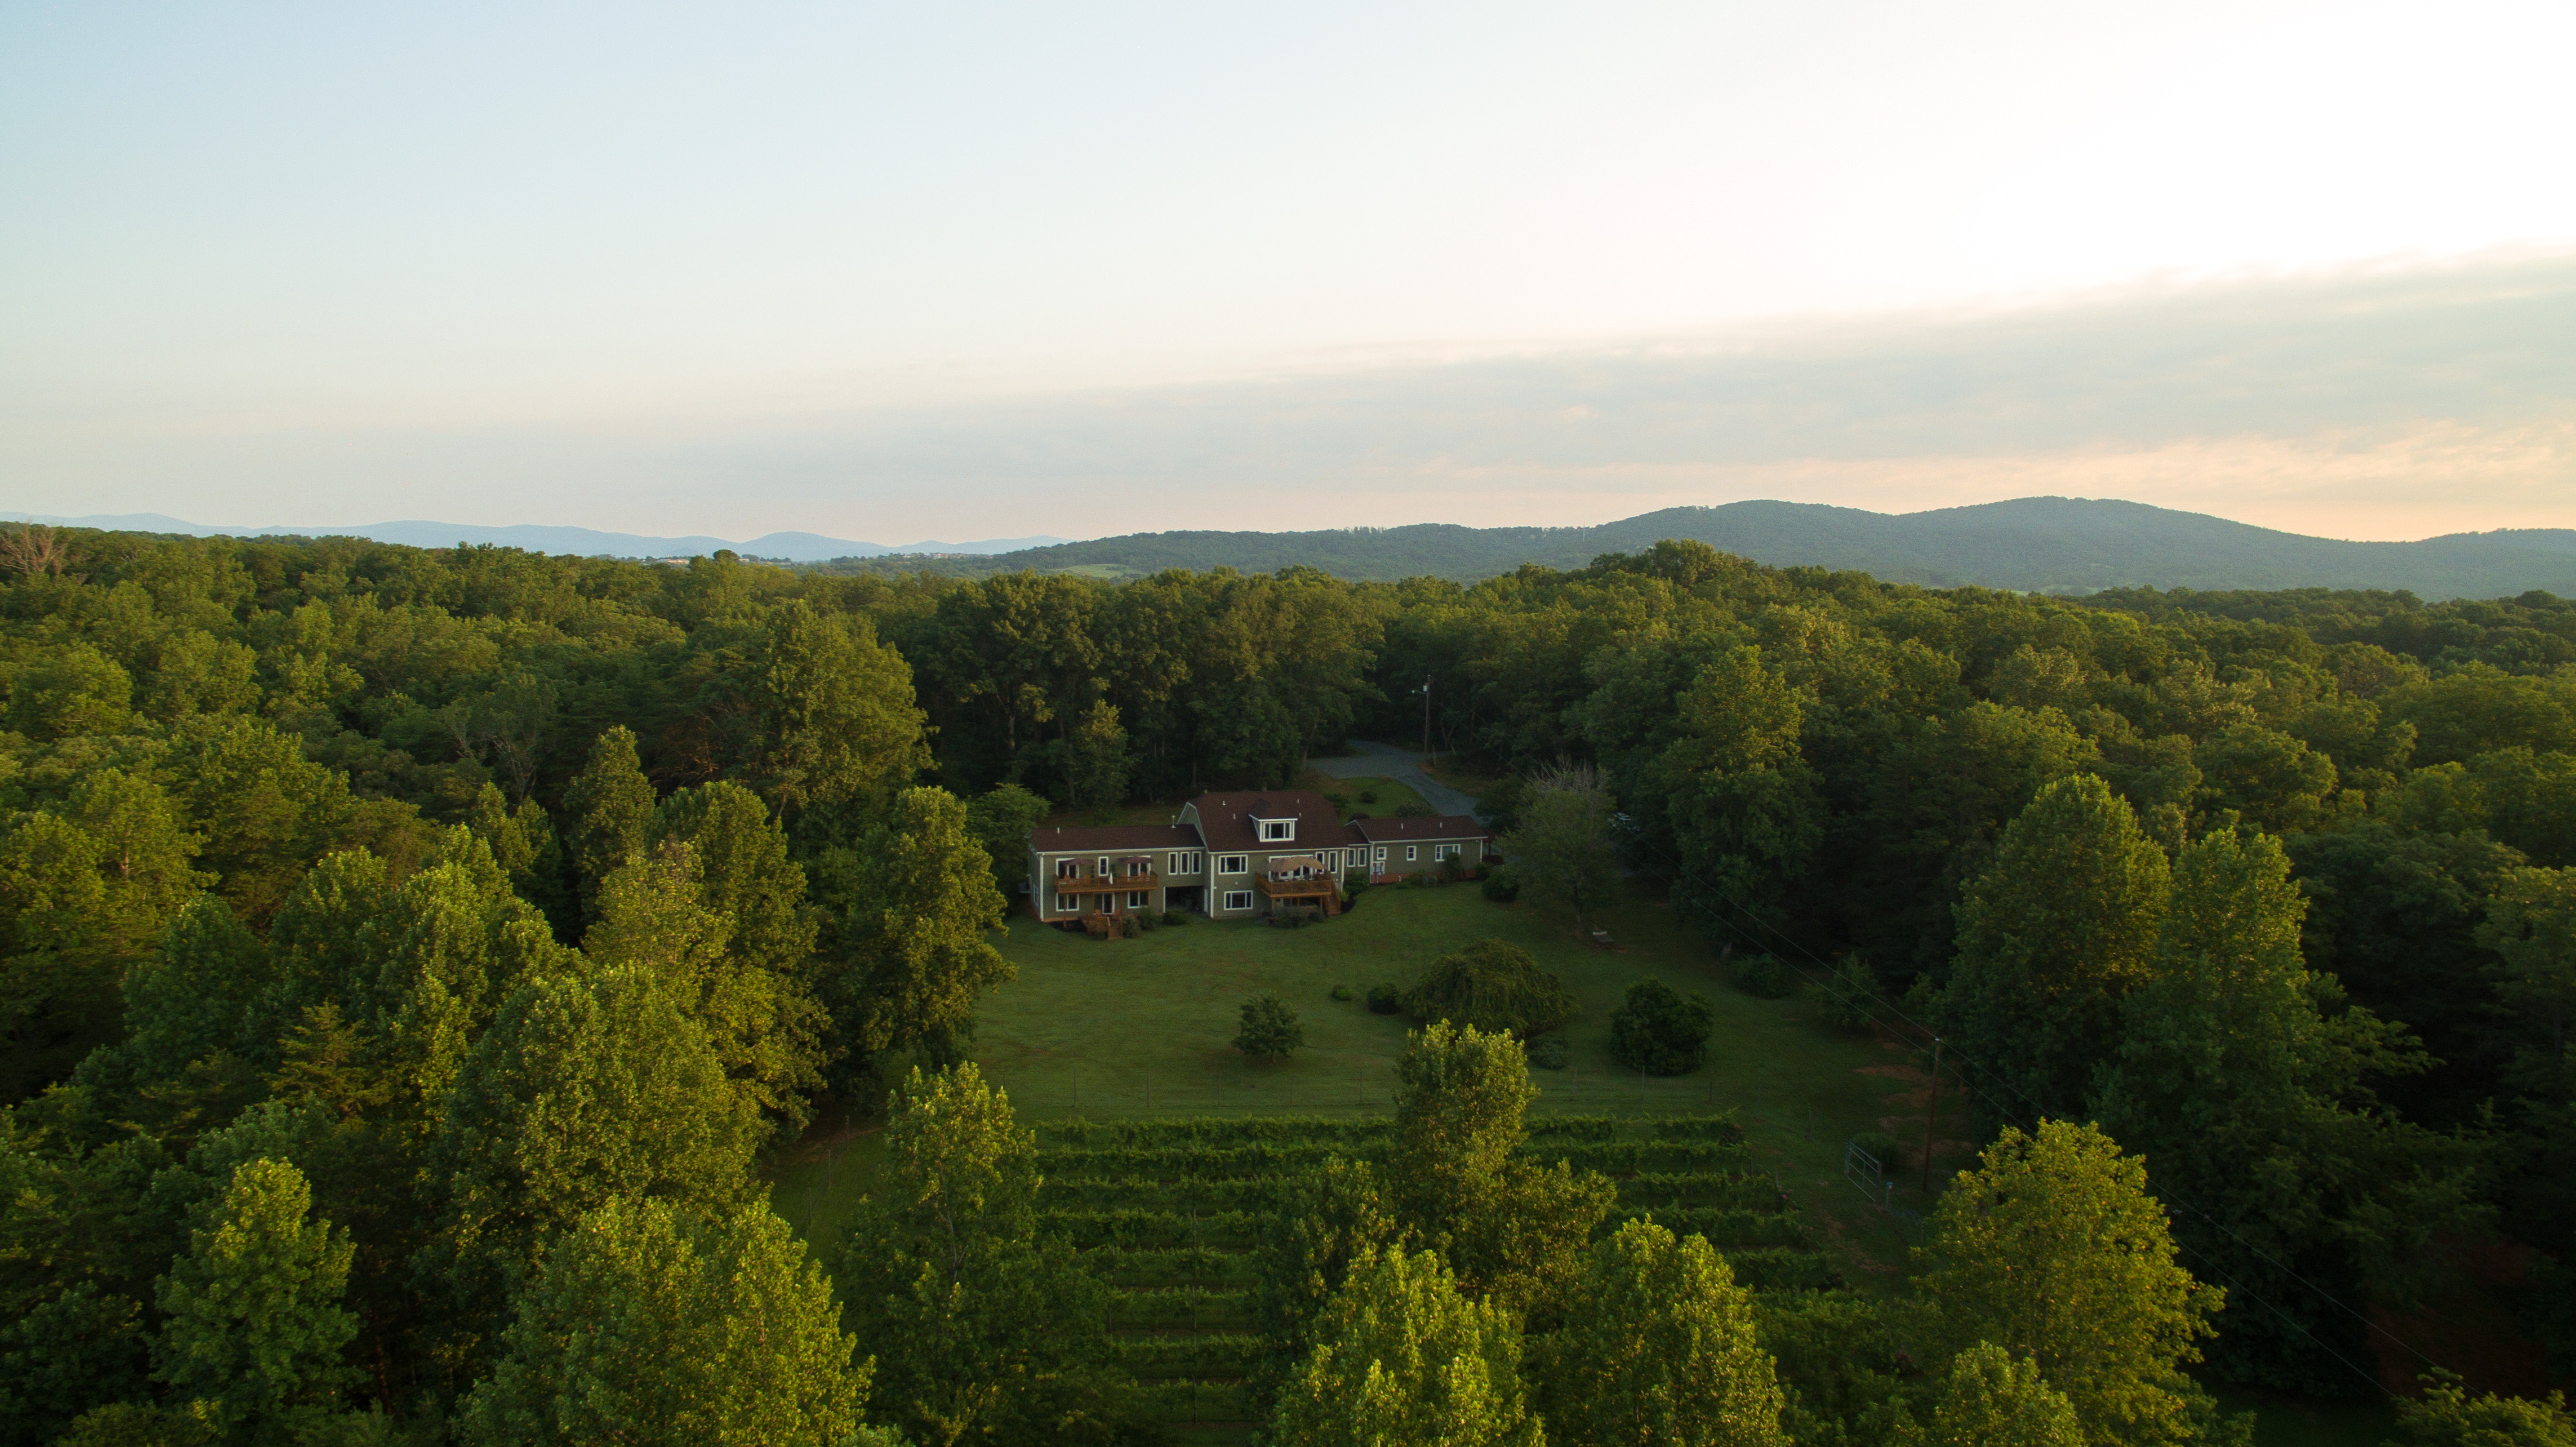 Aerial view of B&B surrounded by a lush green lawn, hundreds of green trees, and distant mountains